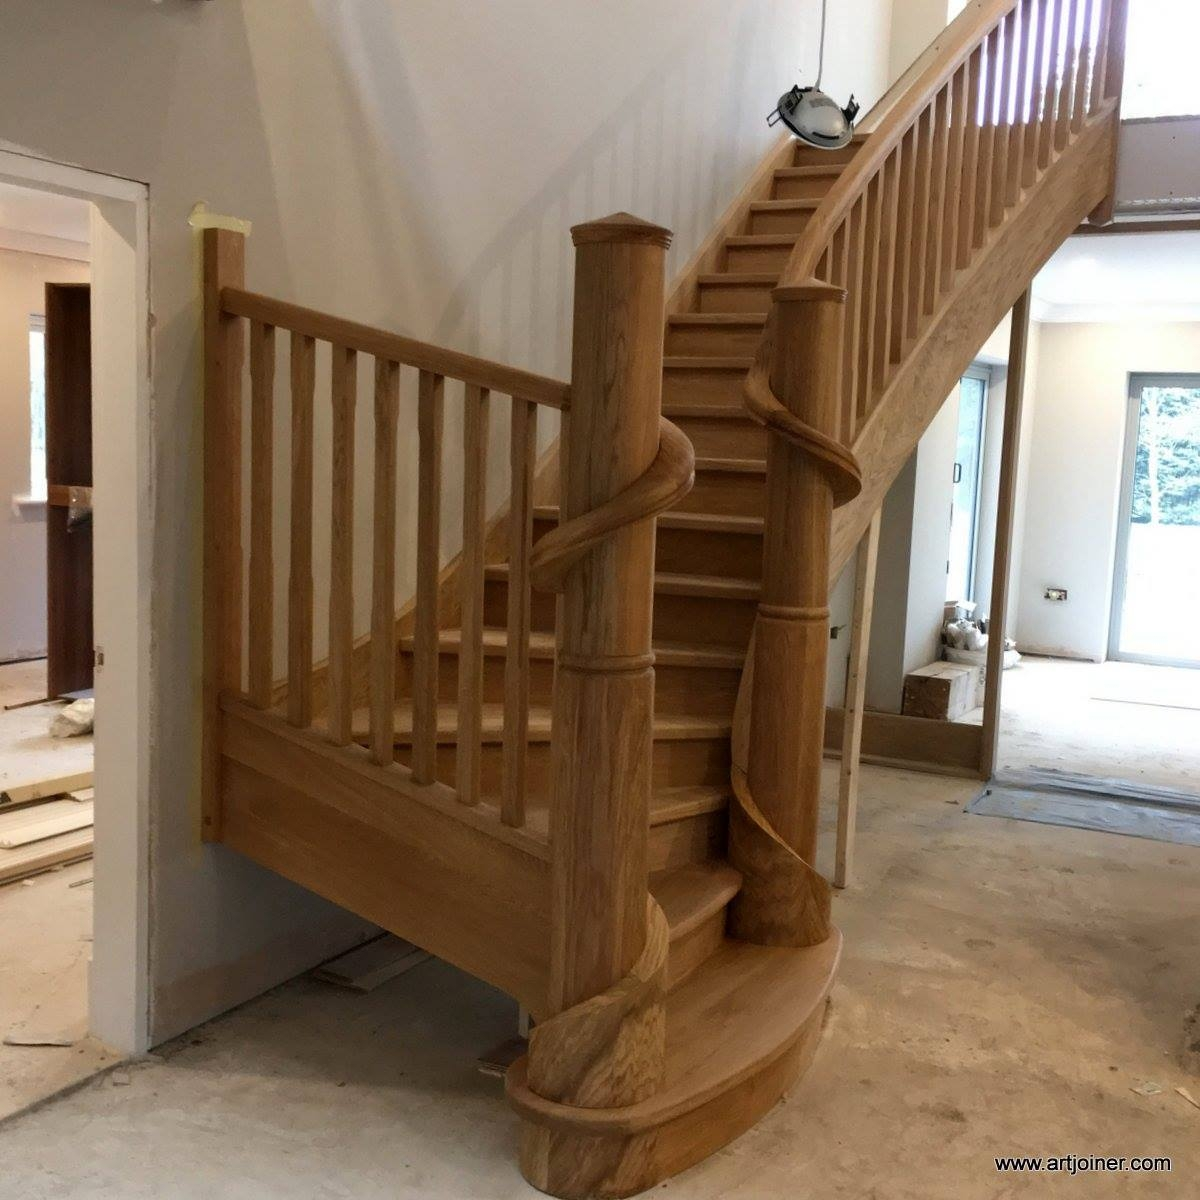 Artjoiner Carpentry On Twitter A New Set Of Stair Frank Lloyd | Frank Lloyd Wright Stairs | Exterior | Farmhouse | Gordon Strong | Bedroom | Wife